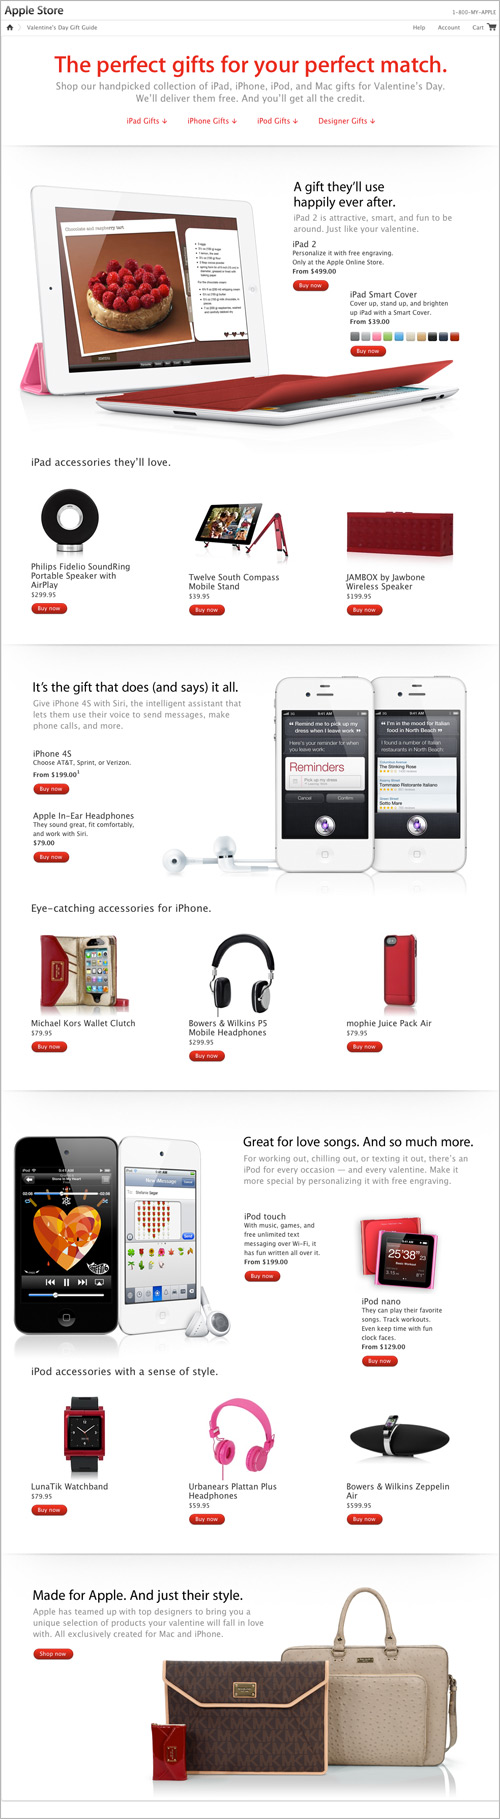 Apple Store Valentine's Day gift guide